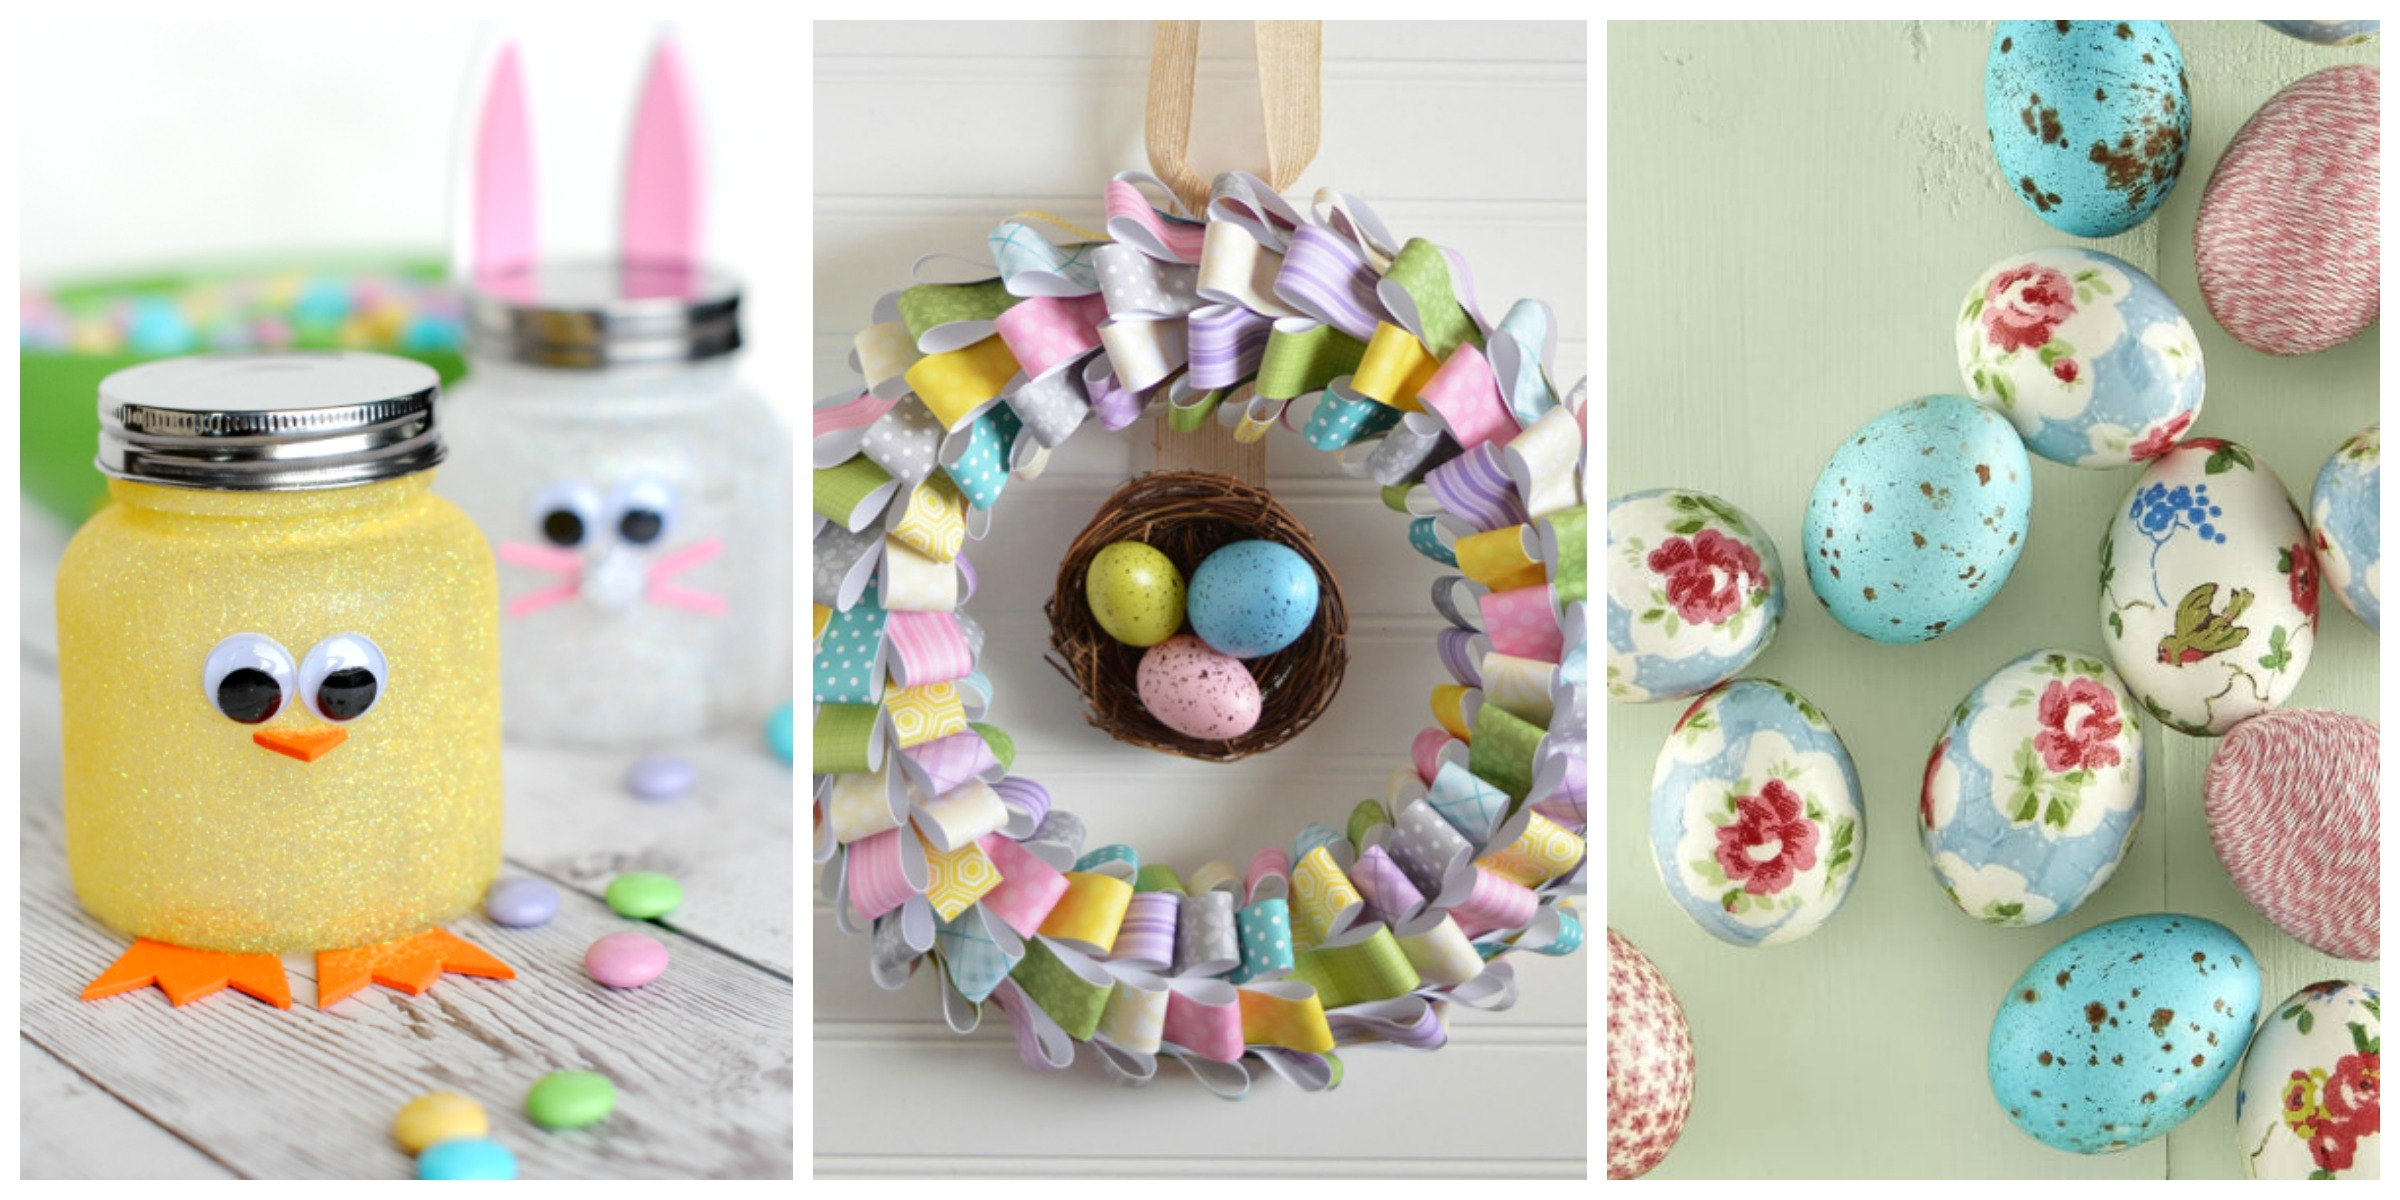 60 easy easter crafts ideas for easter diy decorations for Diy easter decorations for the home